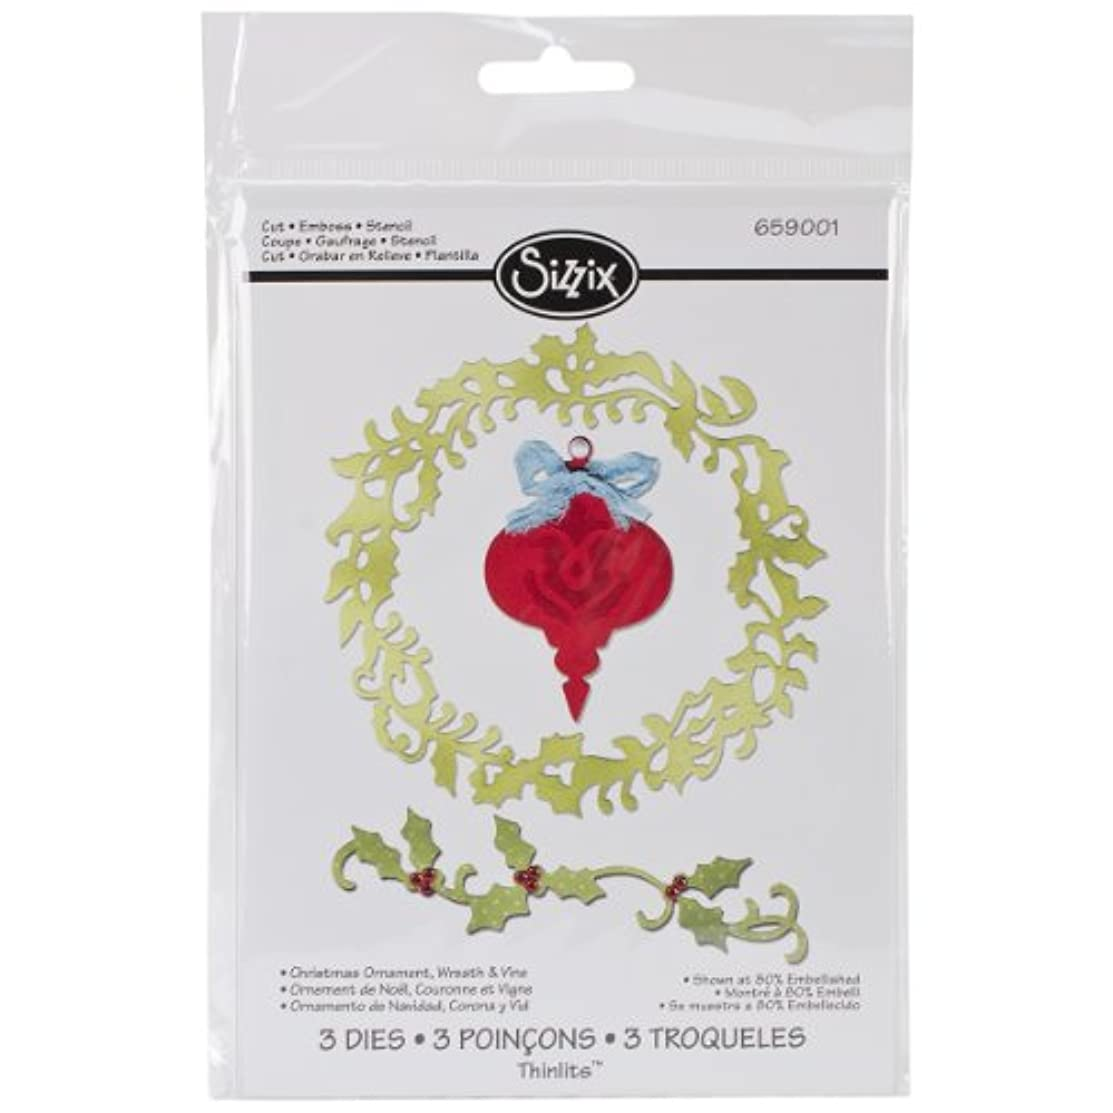 Sizzix 659001 Christmas Ornament/Wreath Thinlits Dies